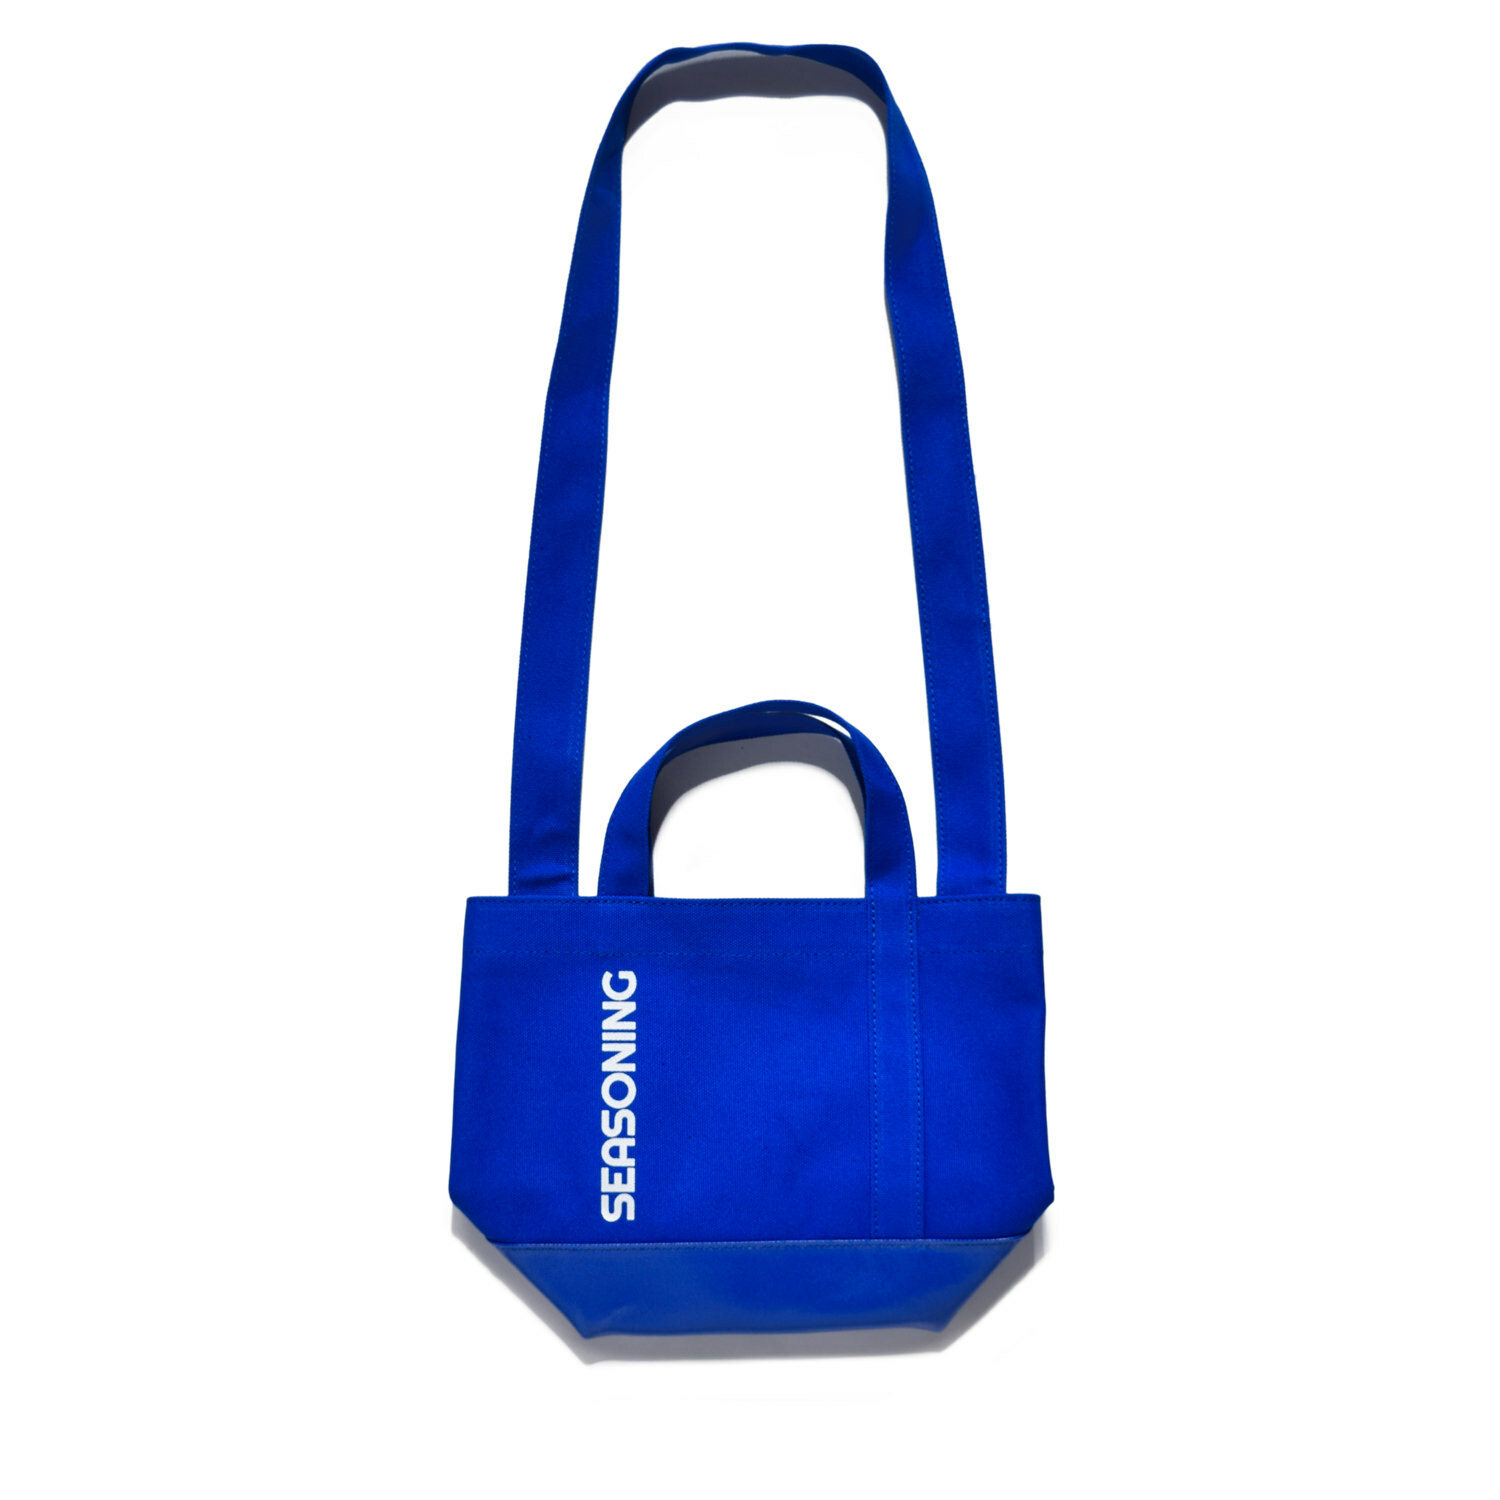 SEASONING TOTE BAG SMALL - BLUE